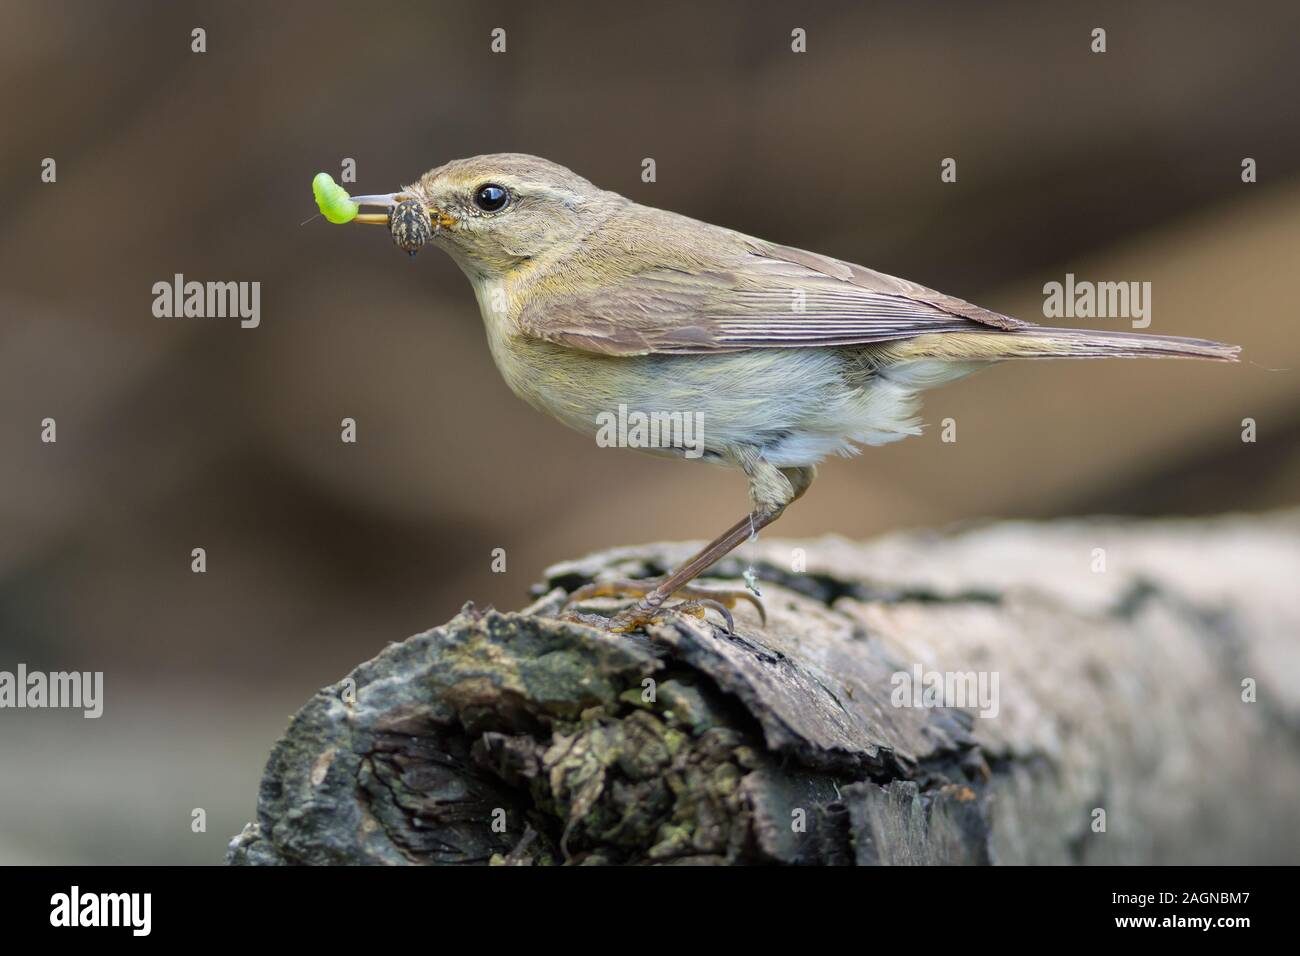 The common chiffchaff, or simply the chiffchaff, (Phylloscopus collybita) is a common and widespread leaf warbler which breeds in open woodlands throu Stock Photo